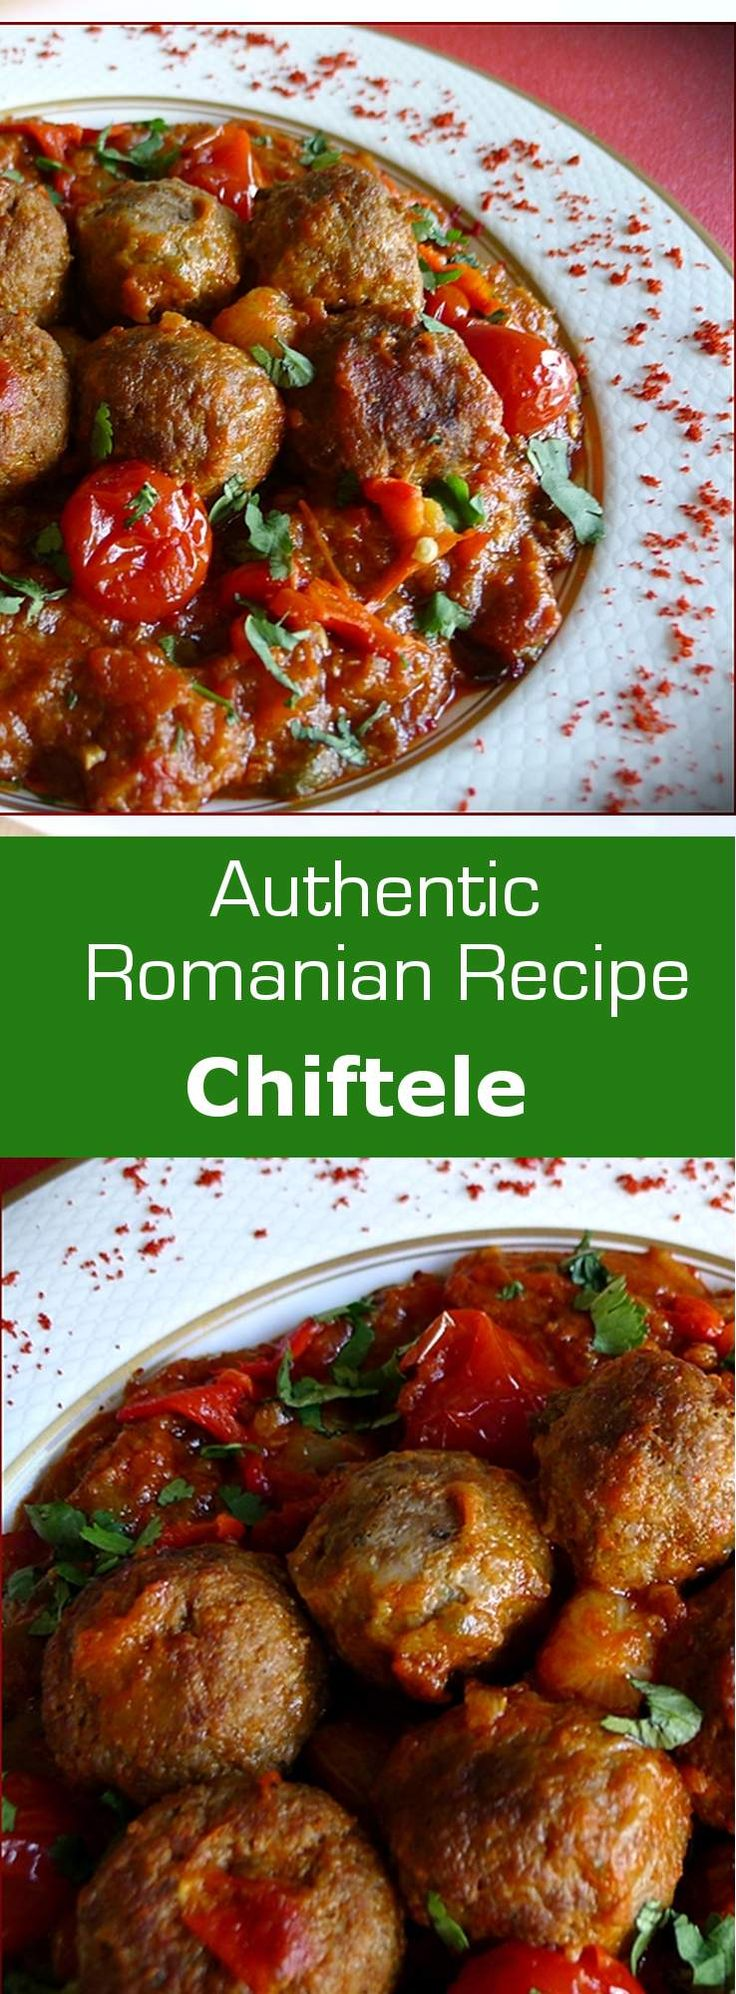 Chiftele are Romanian meatballs where the meat is ground with raw vegetables before being fried. #meatball #romania